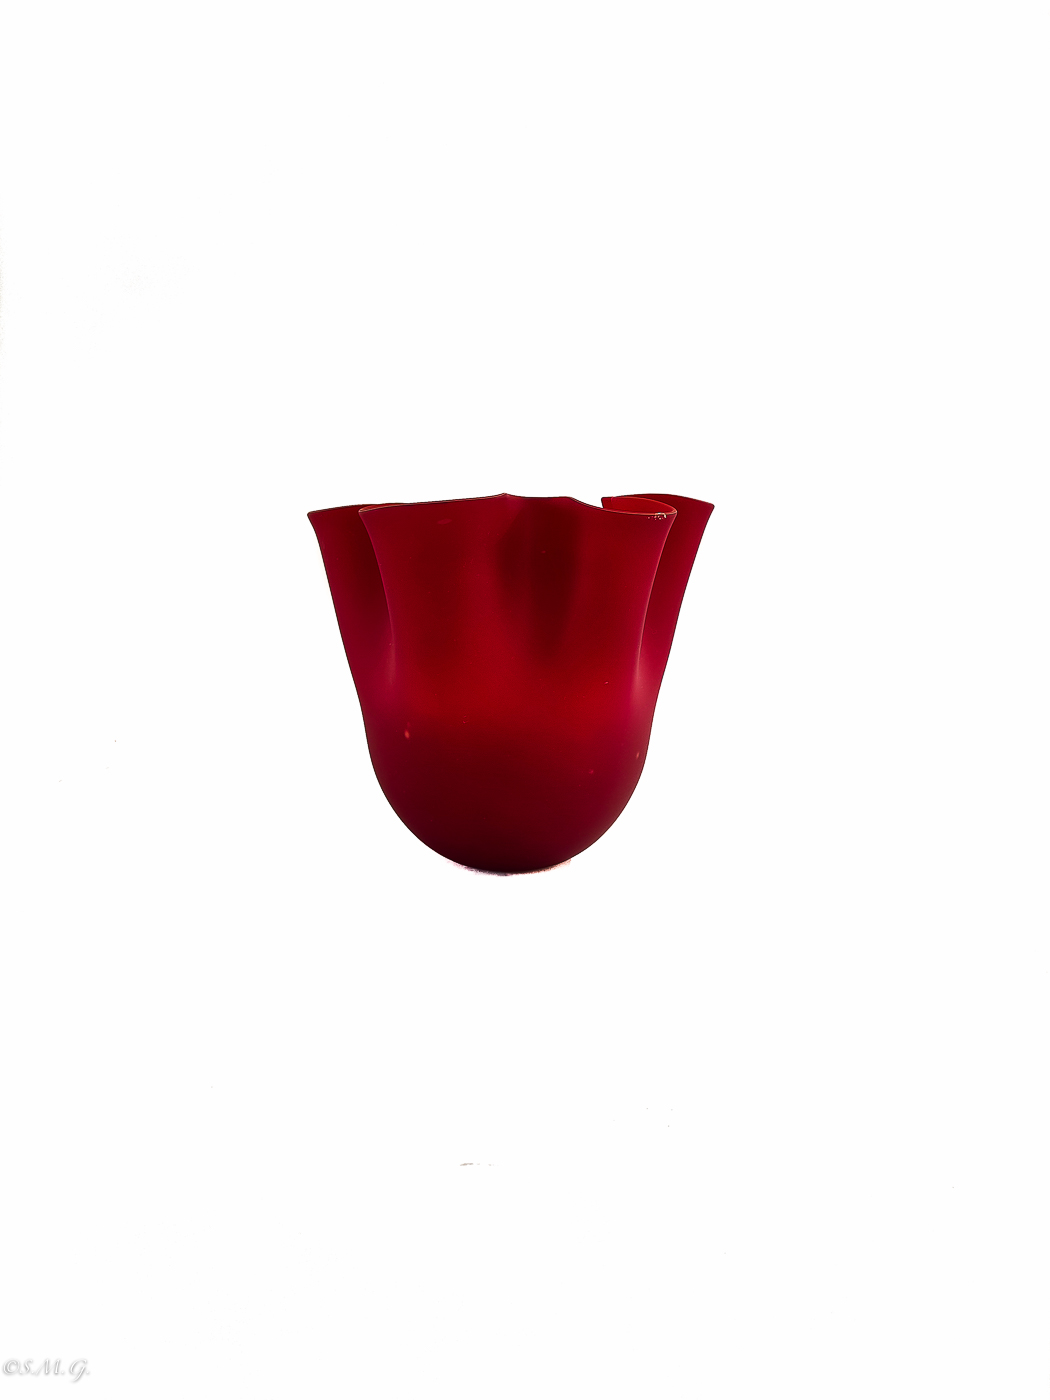 Red vase in the shape of a fazzoletto